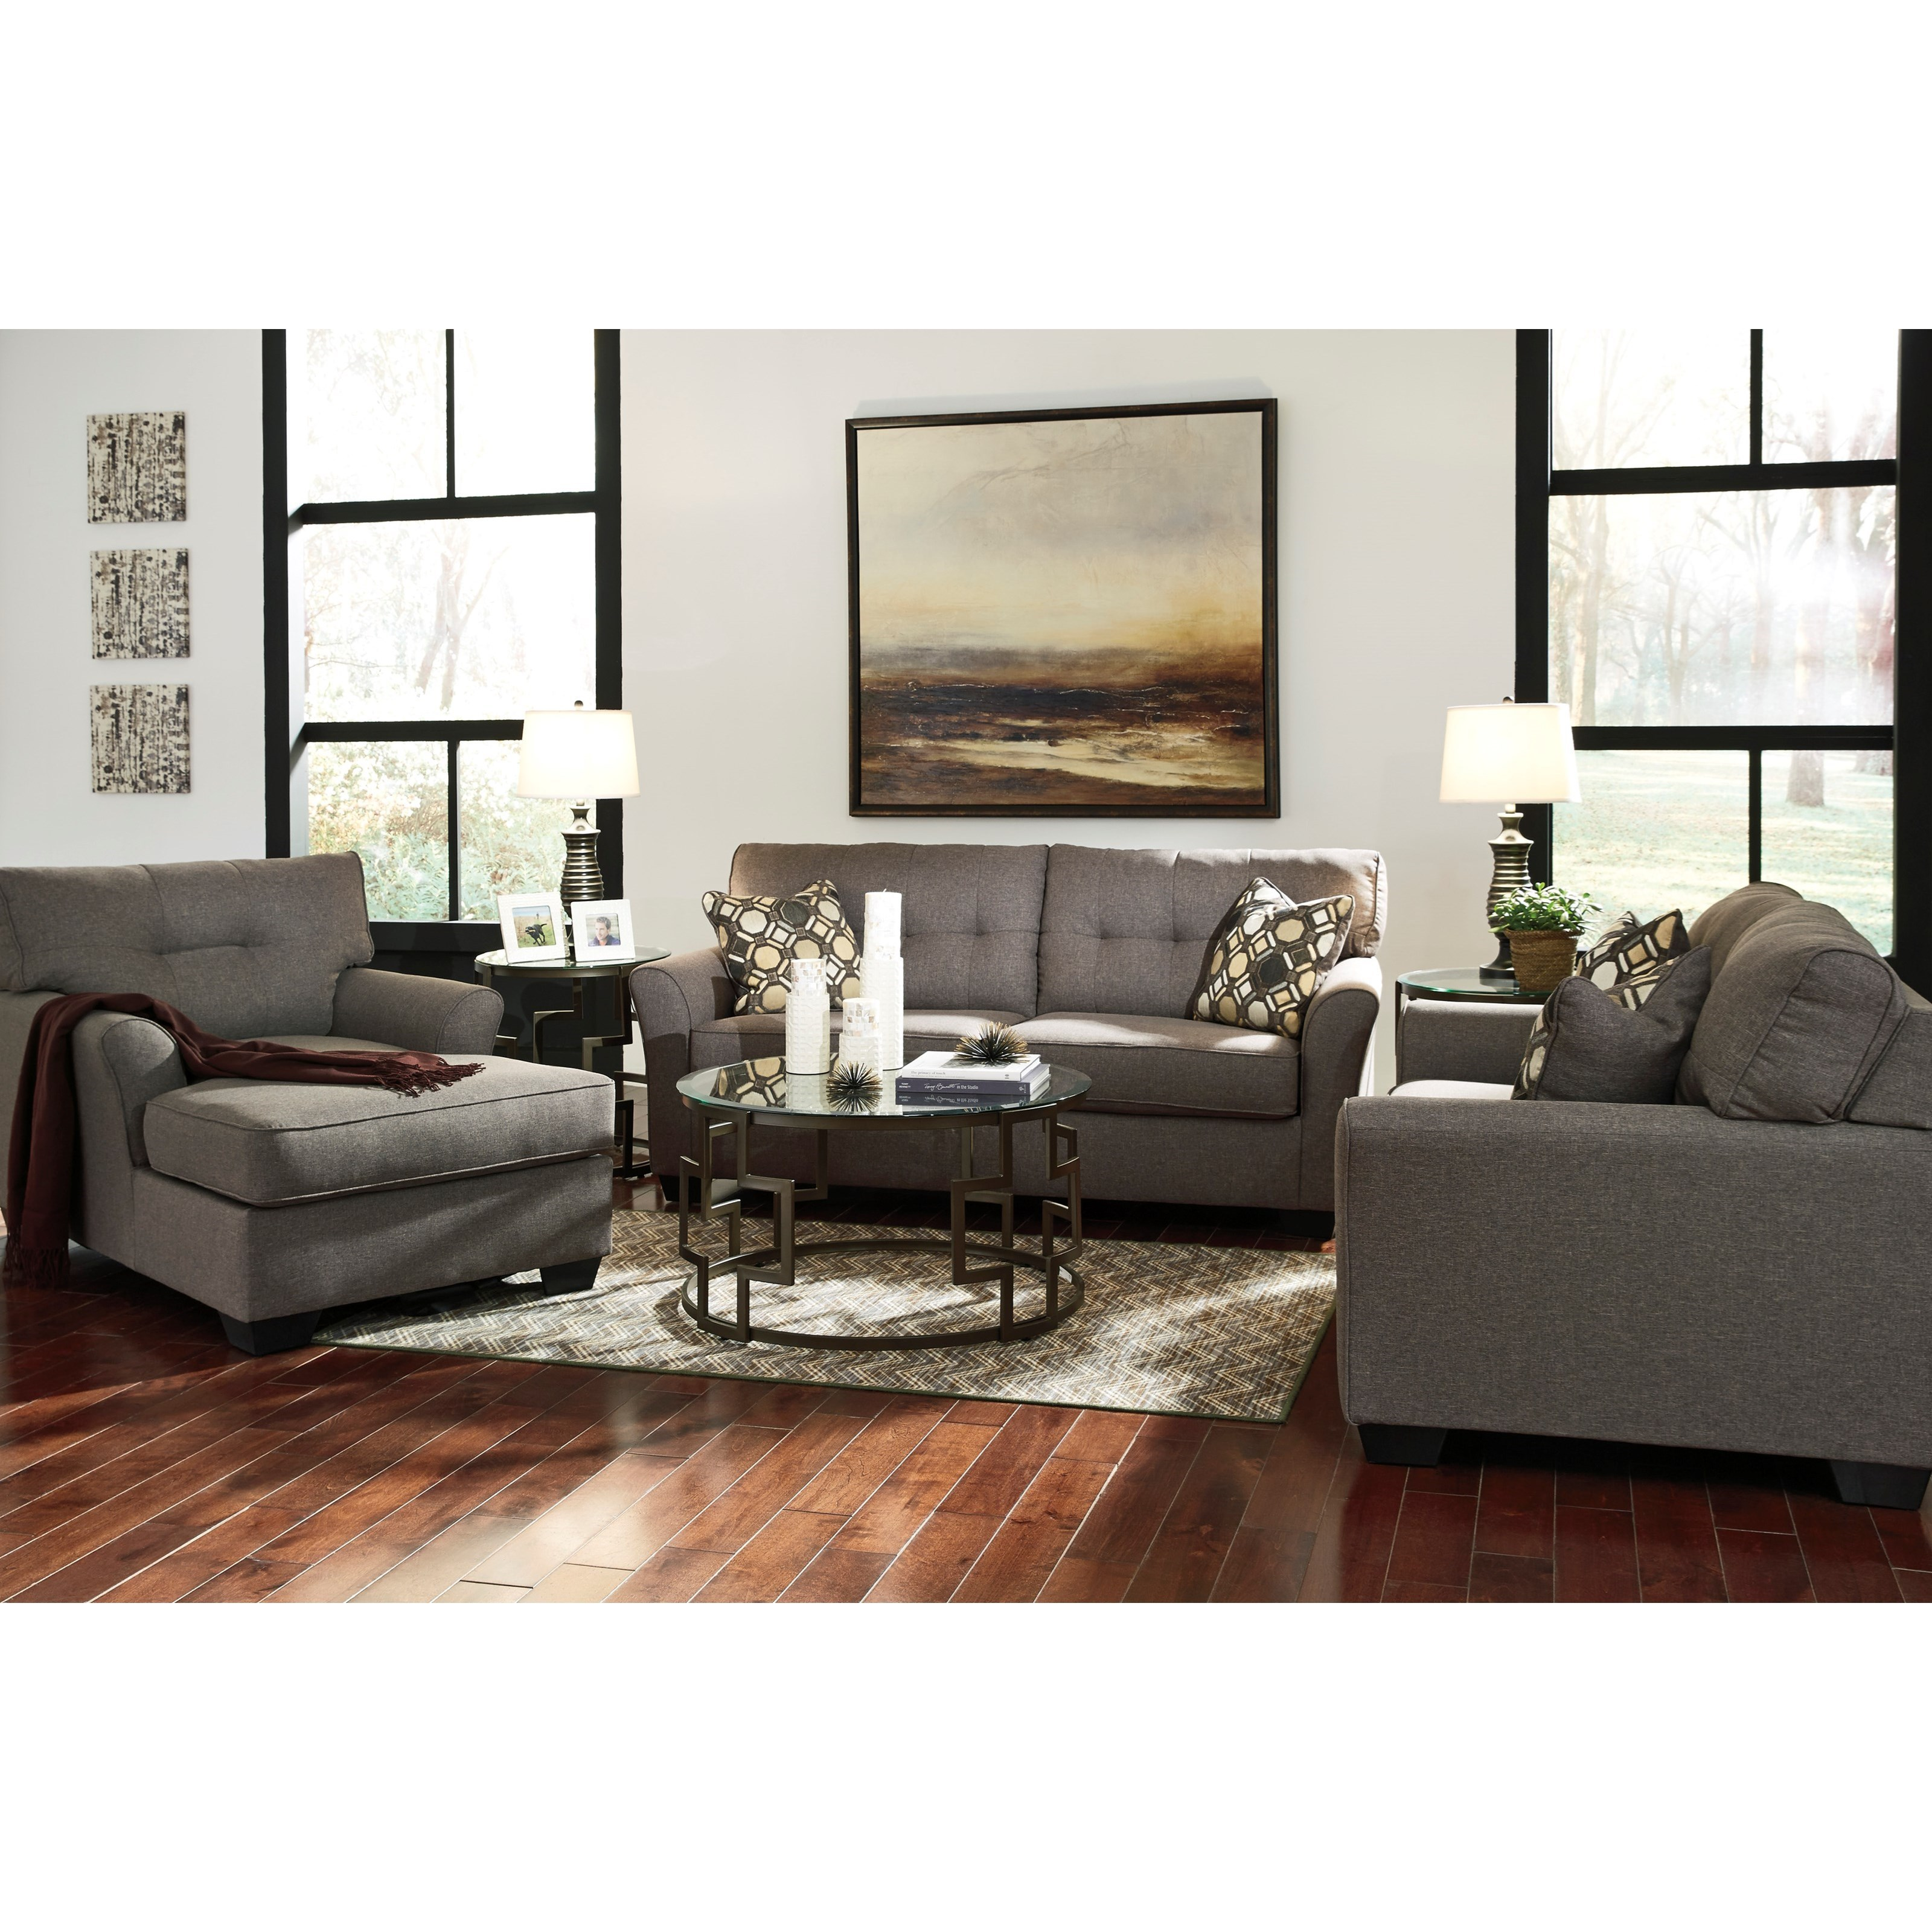 signature design ashley tibbee stationary living room group products color piece accent chair and table set furniture end tables with storage pier one sofa quilted fall runners